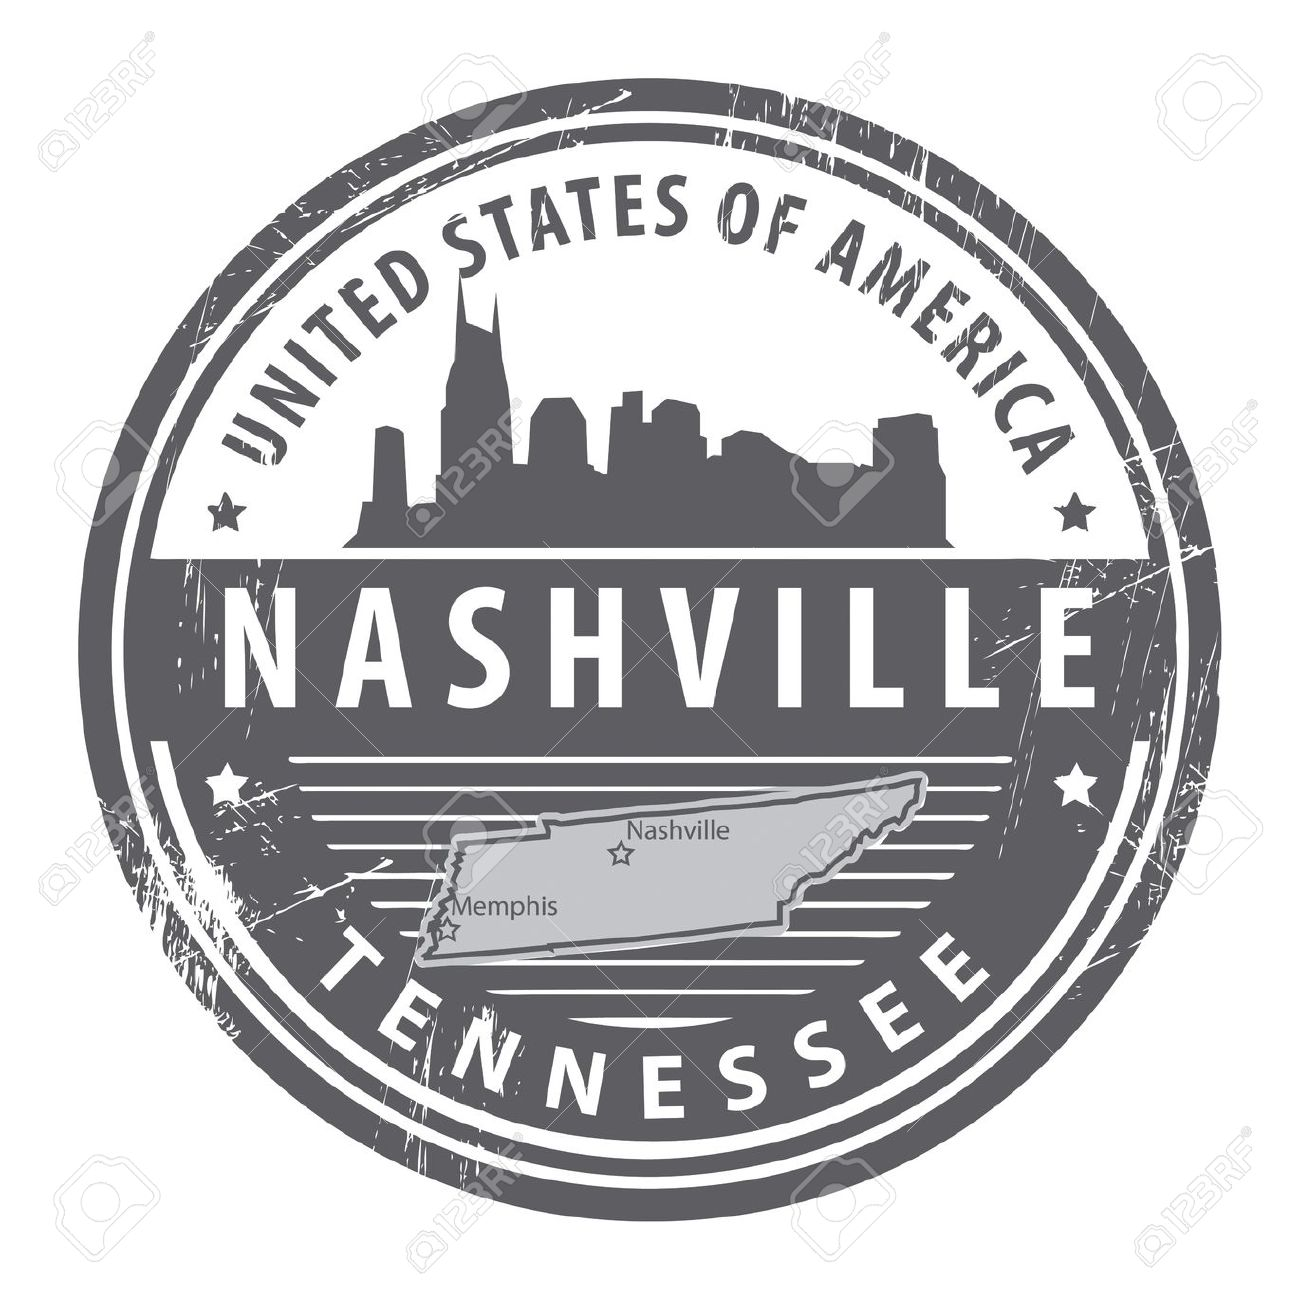 460 Nashville Stock Illustrations, Cliparts And Royalty Free.